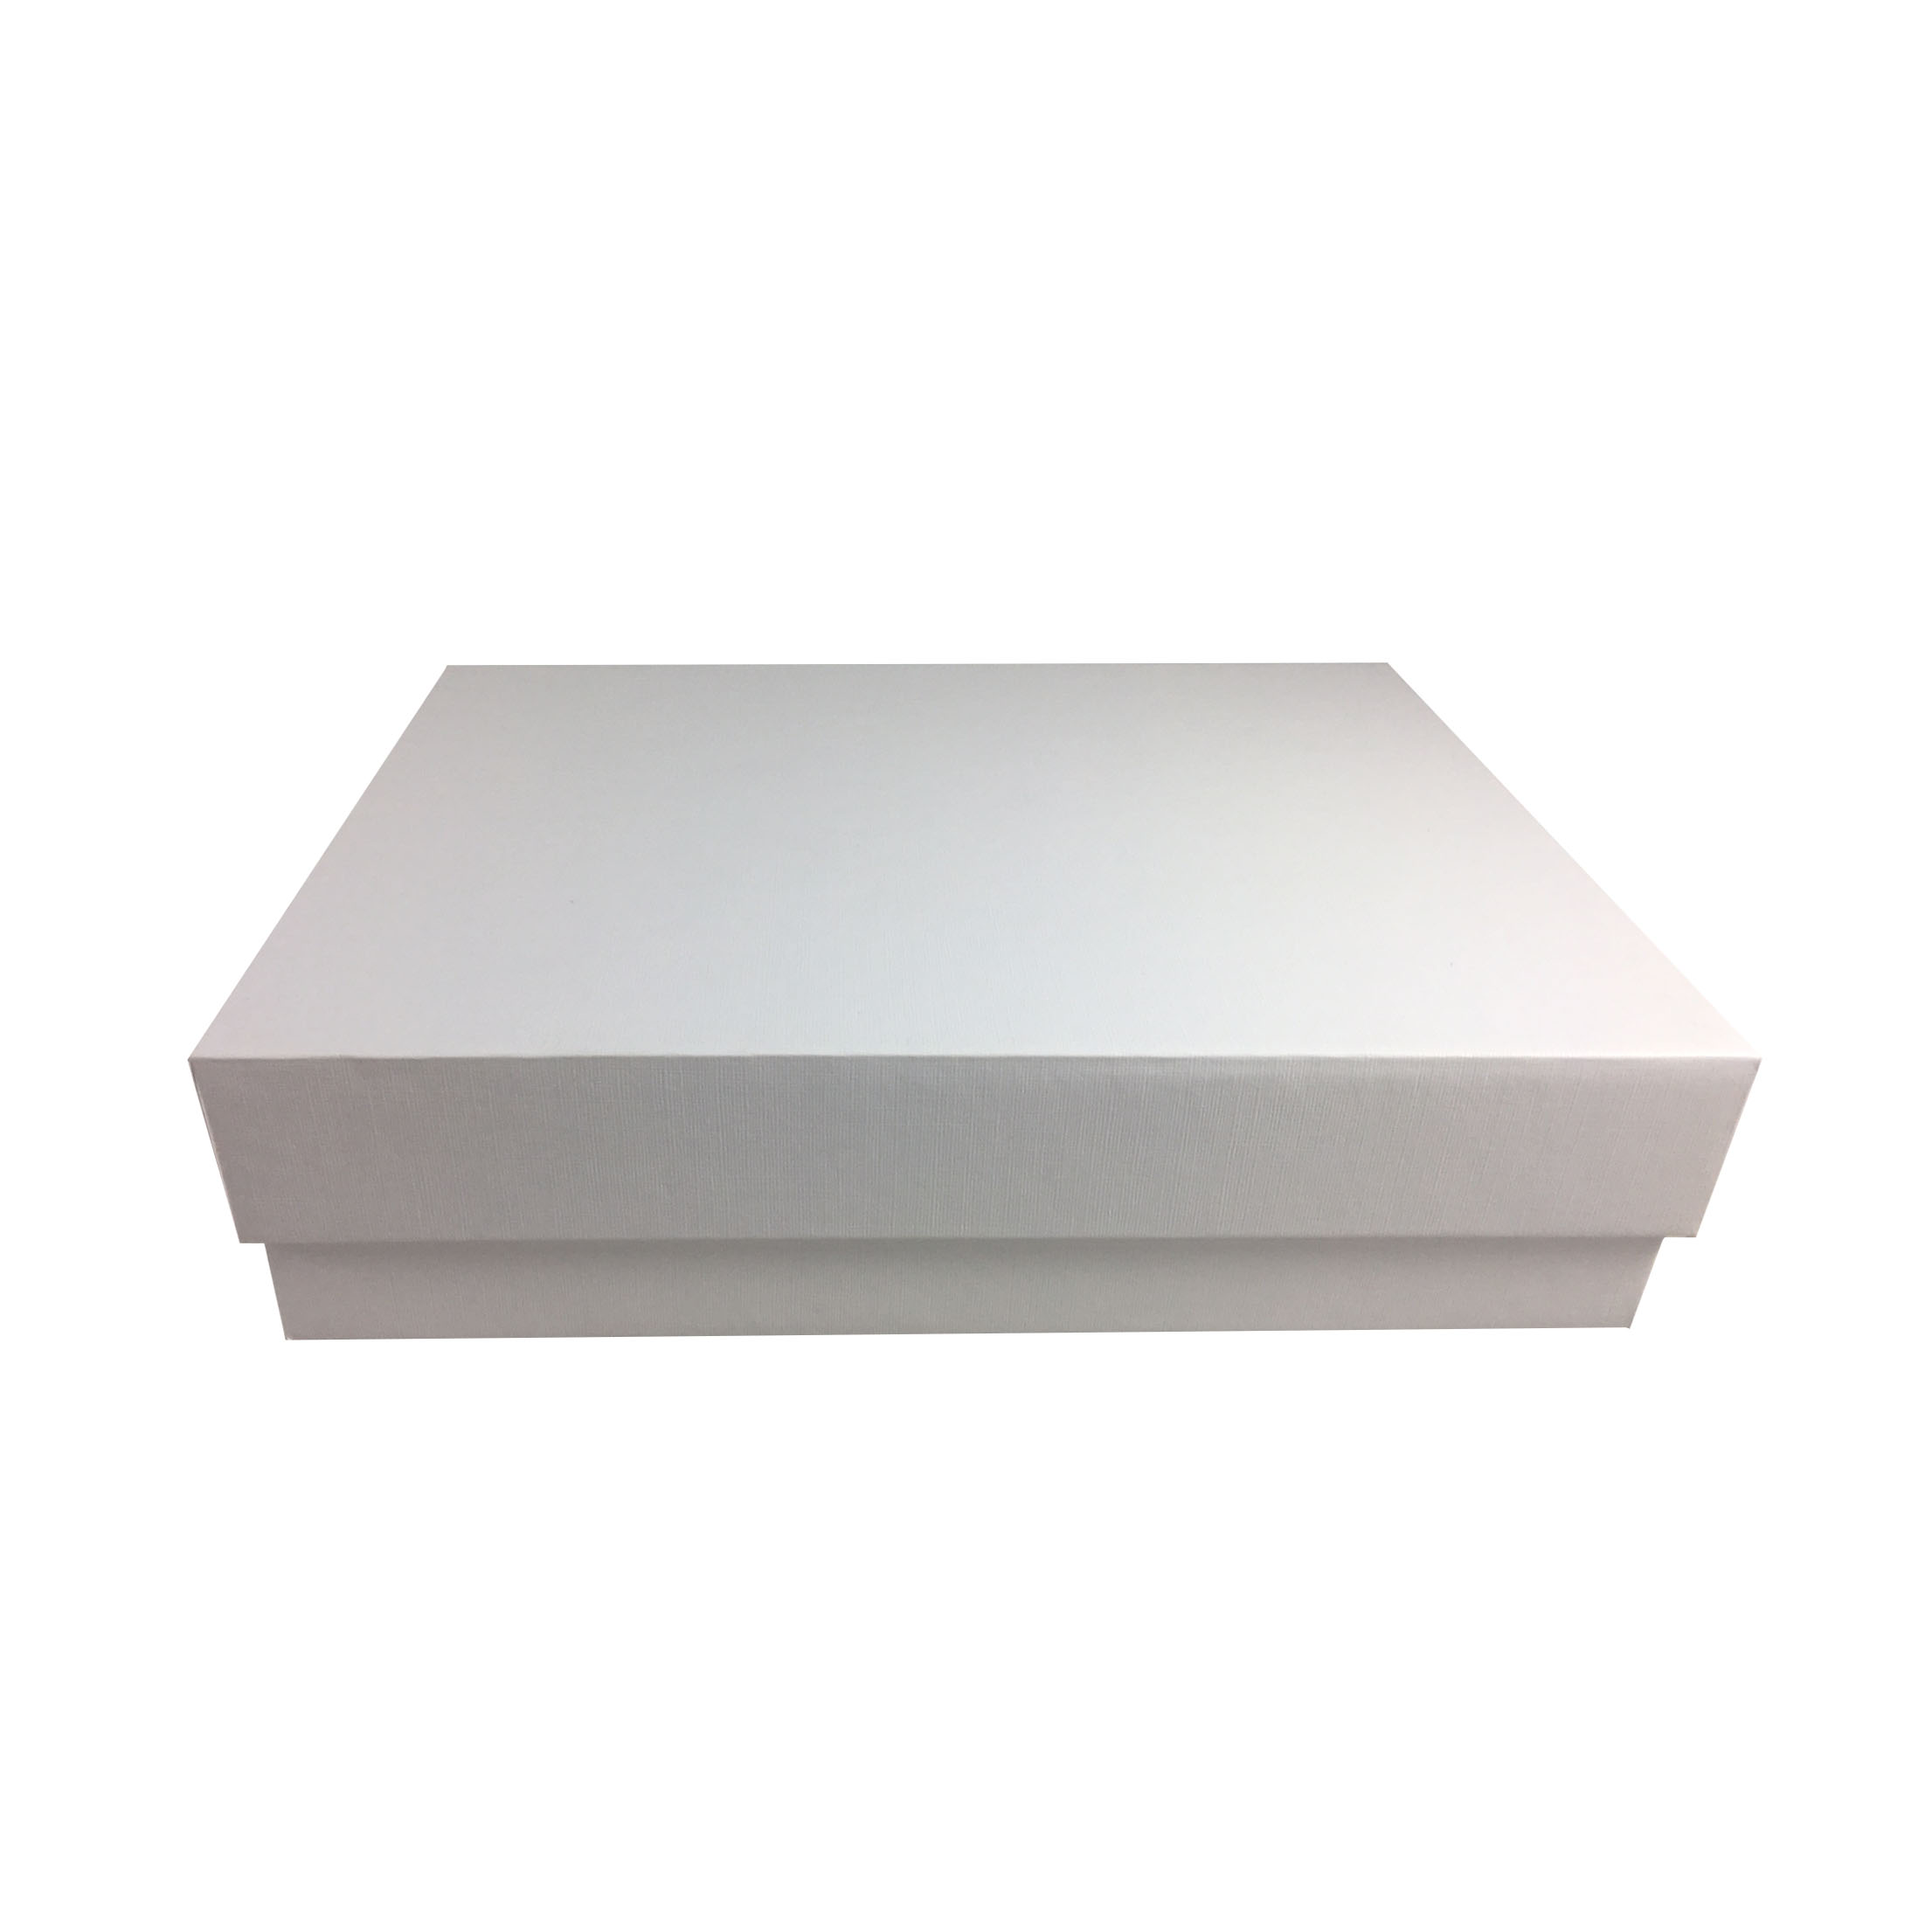 White Wedding Post Box: White Handmade Quality Mailing Box To Mail Out Wedding